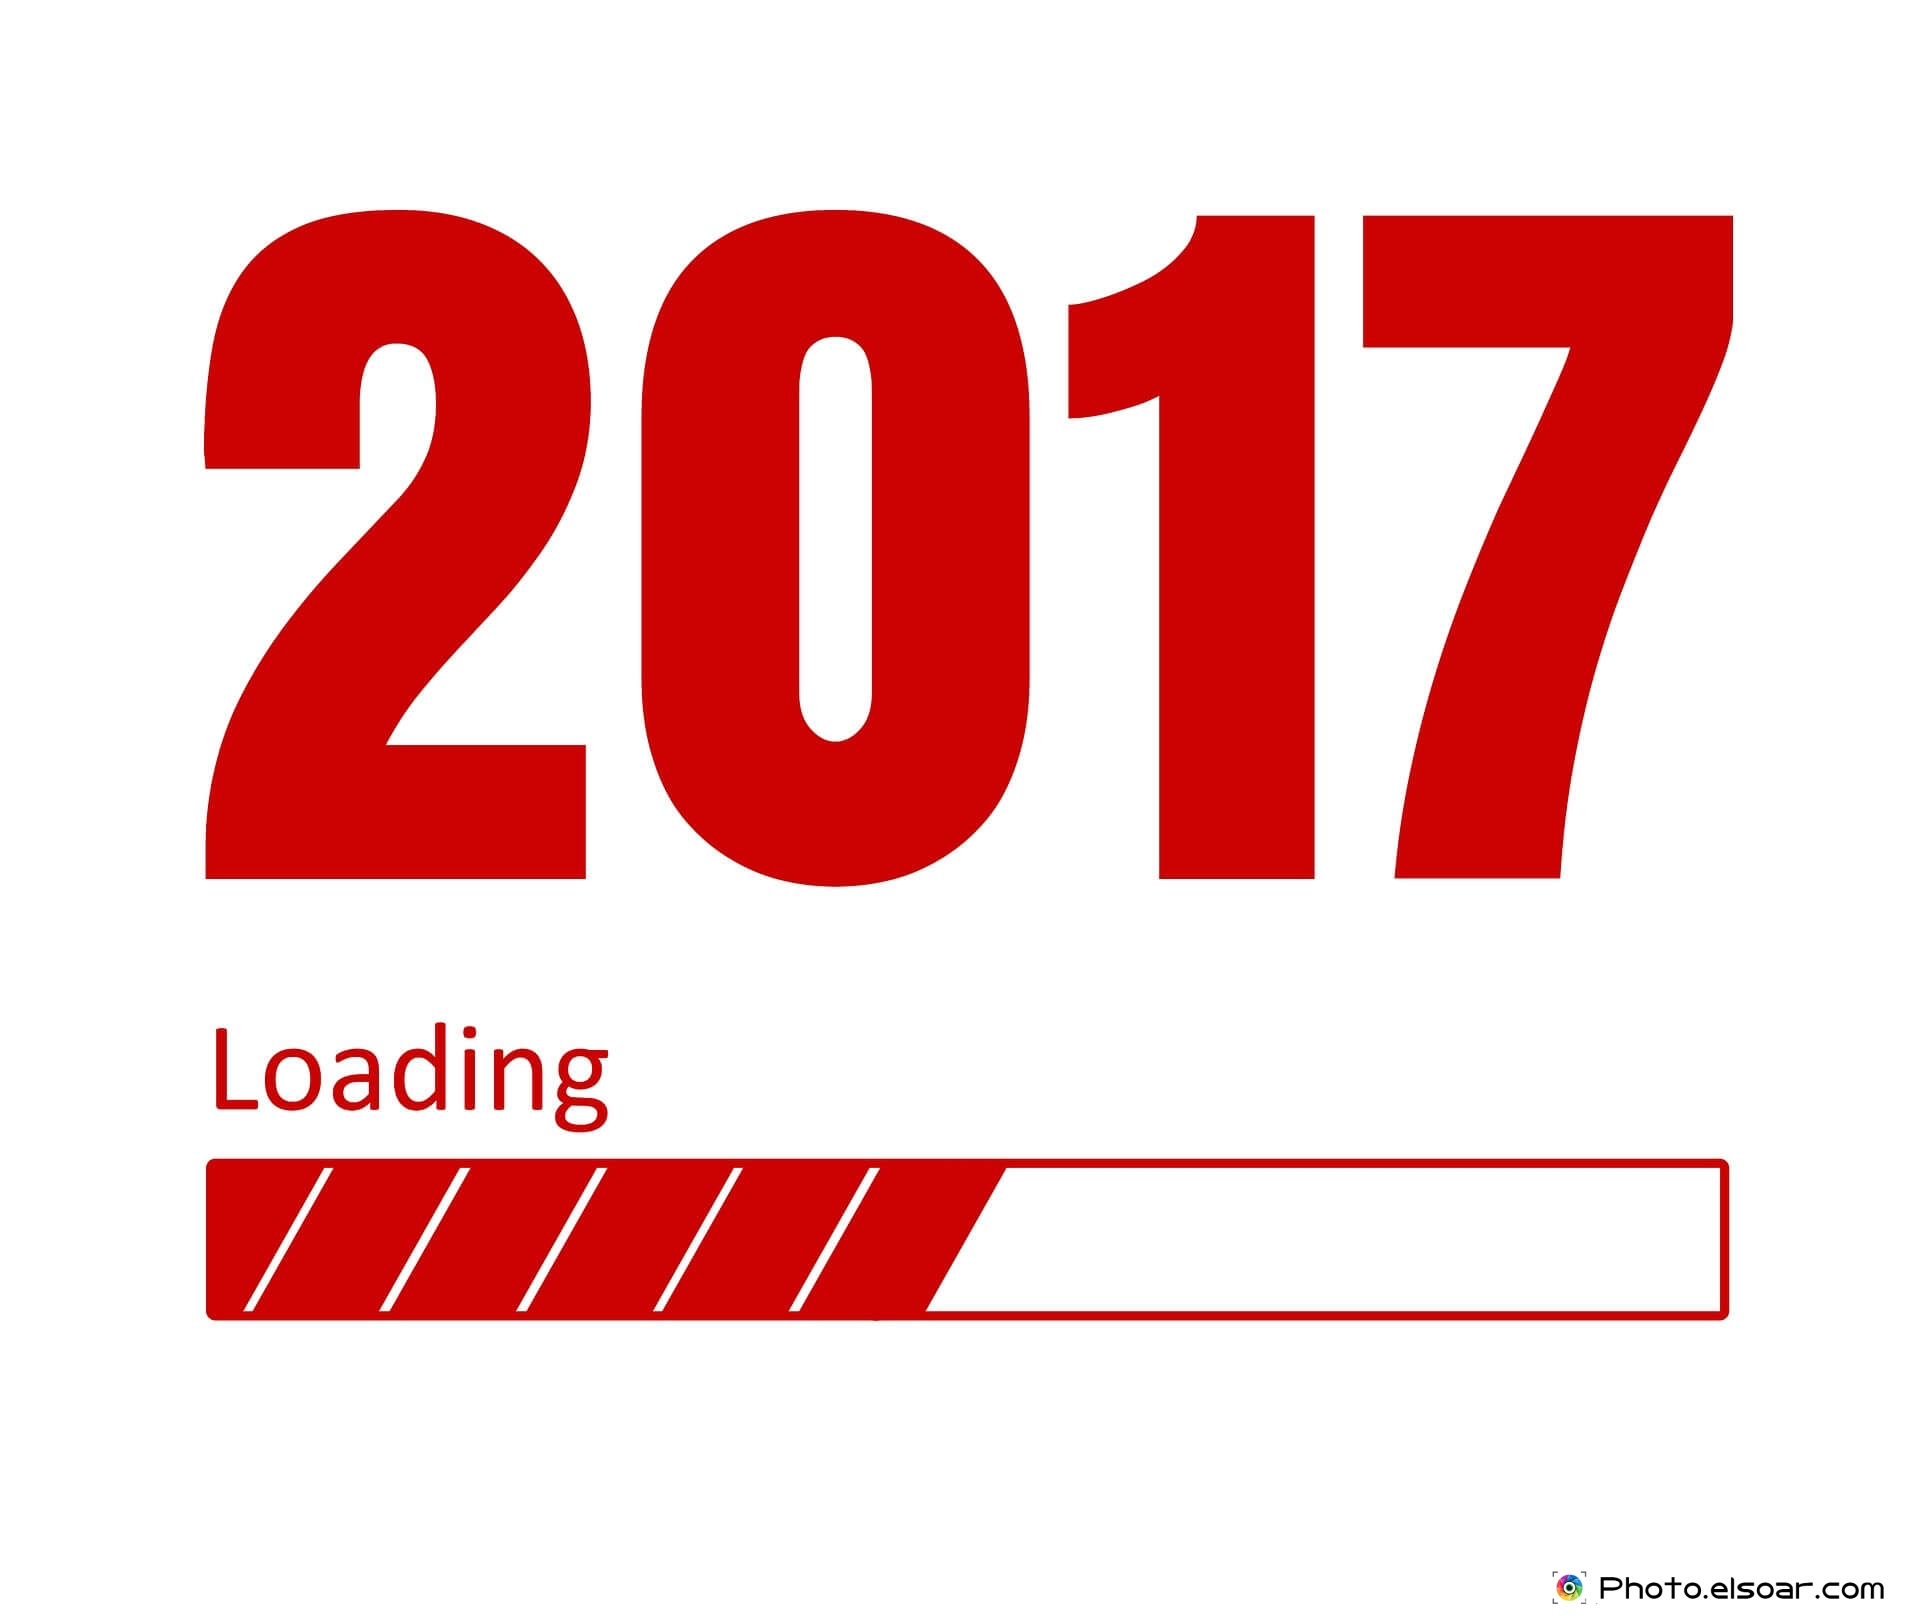 2017 Loading,New Year 2017,2017 Images